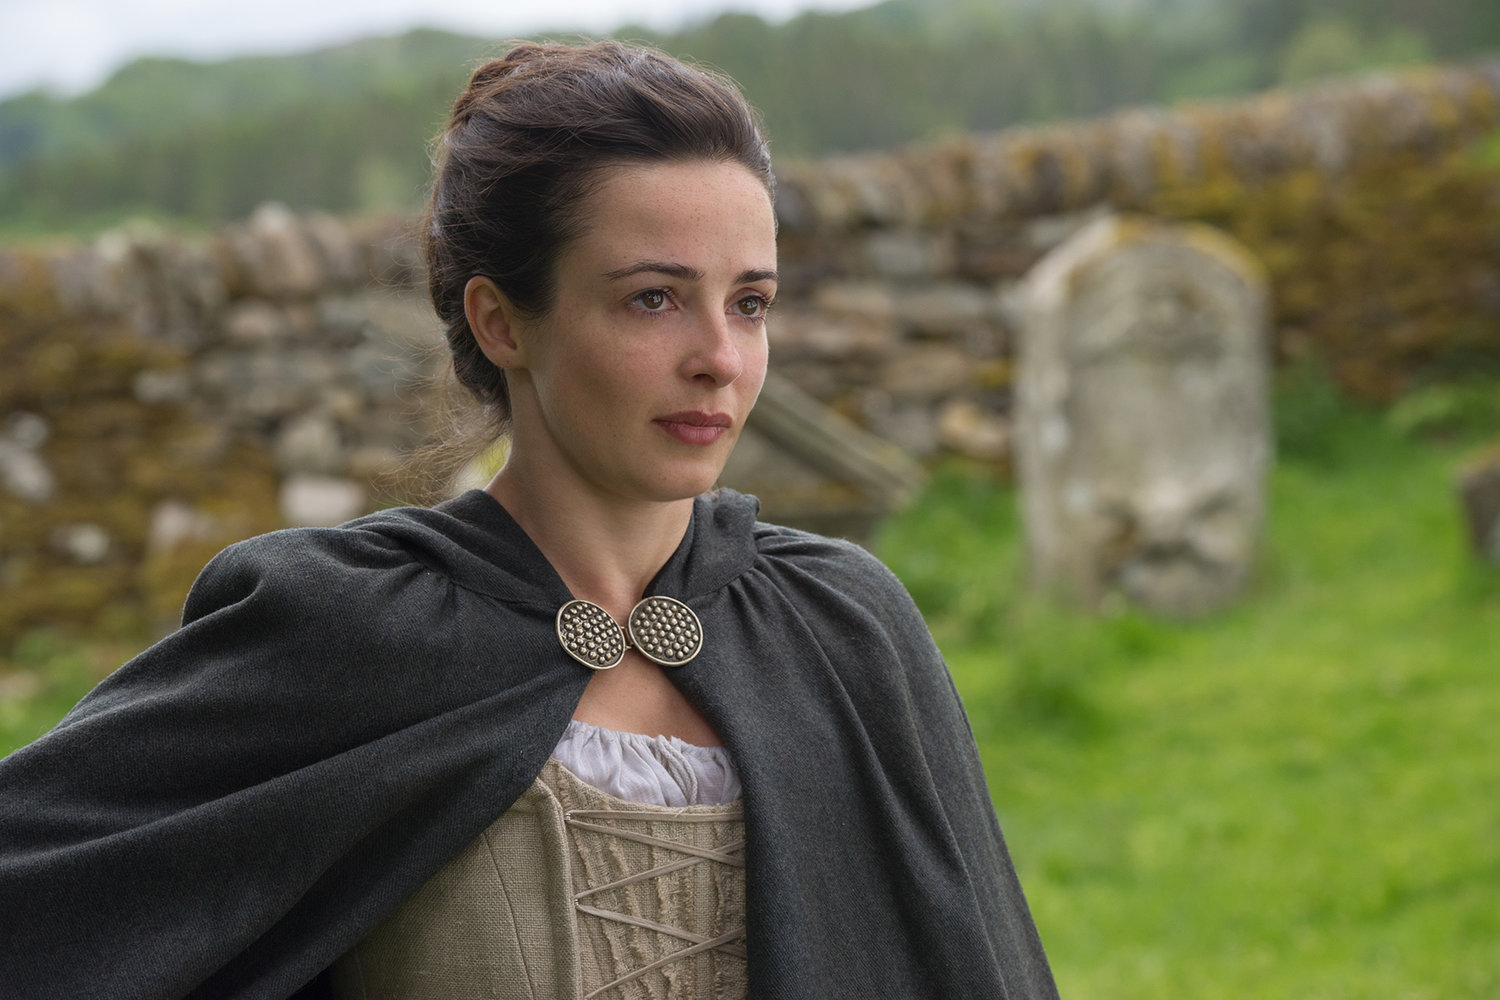 Laura Donnelly présente le rôle principal dans la série HBO de Joss Whedon THE NEVERS – Newstrotteur laura donnelly